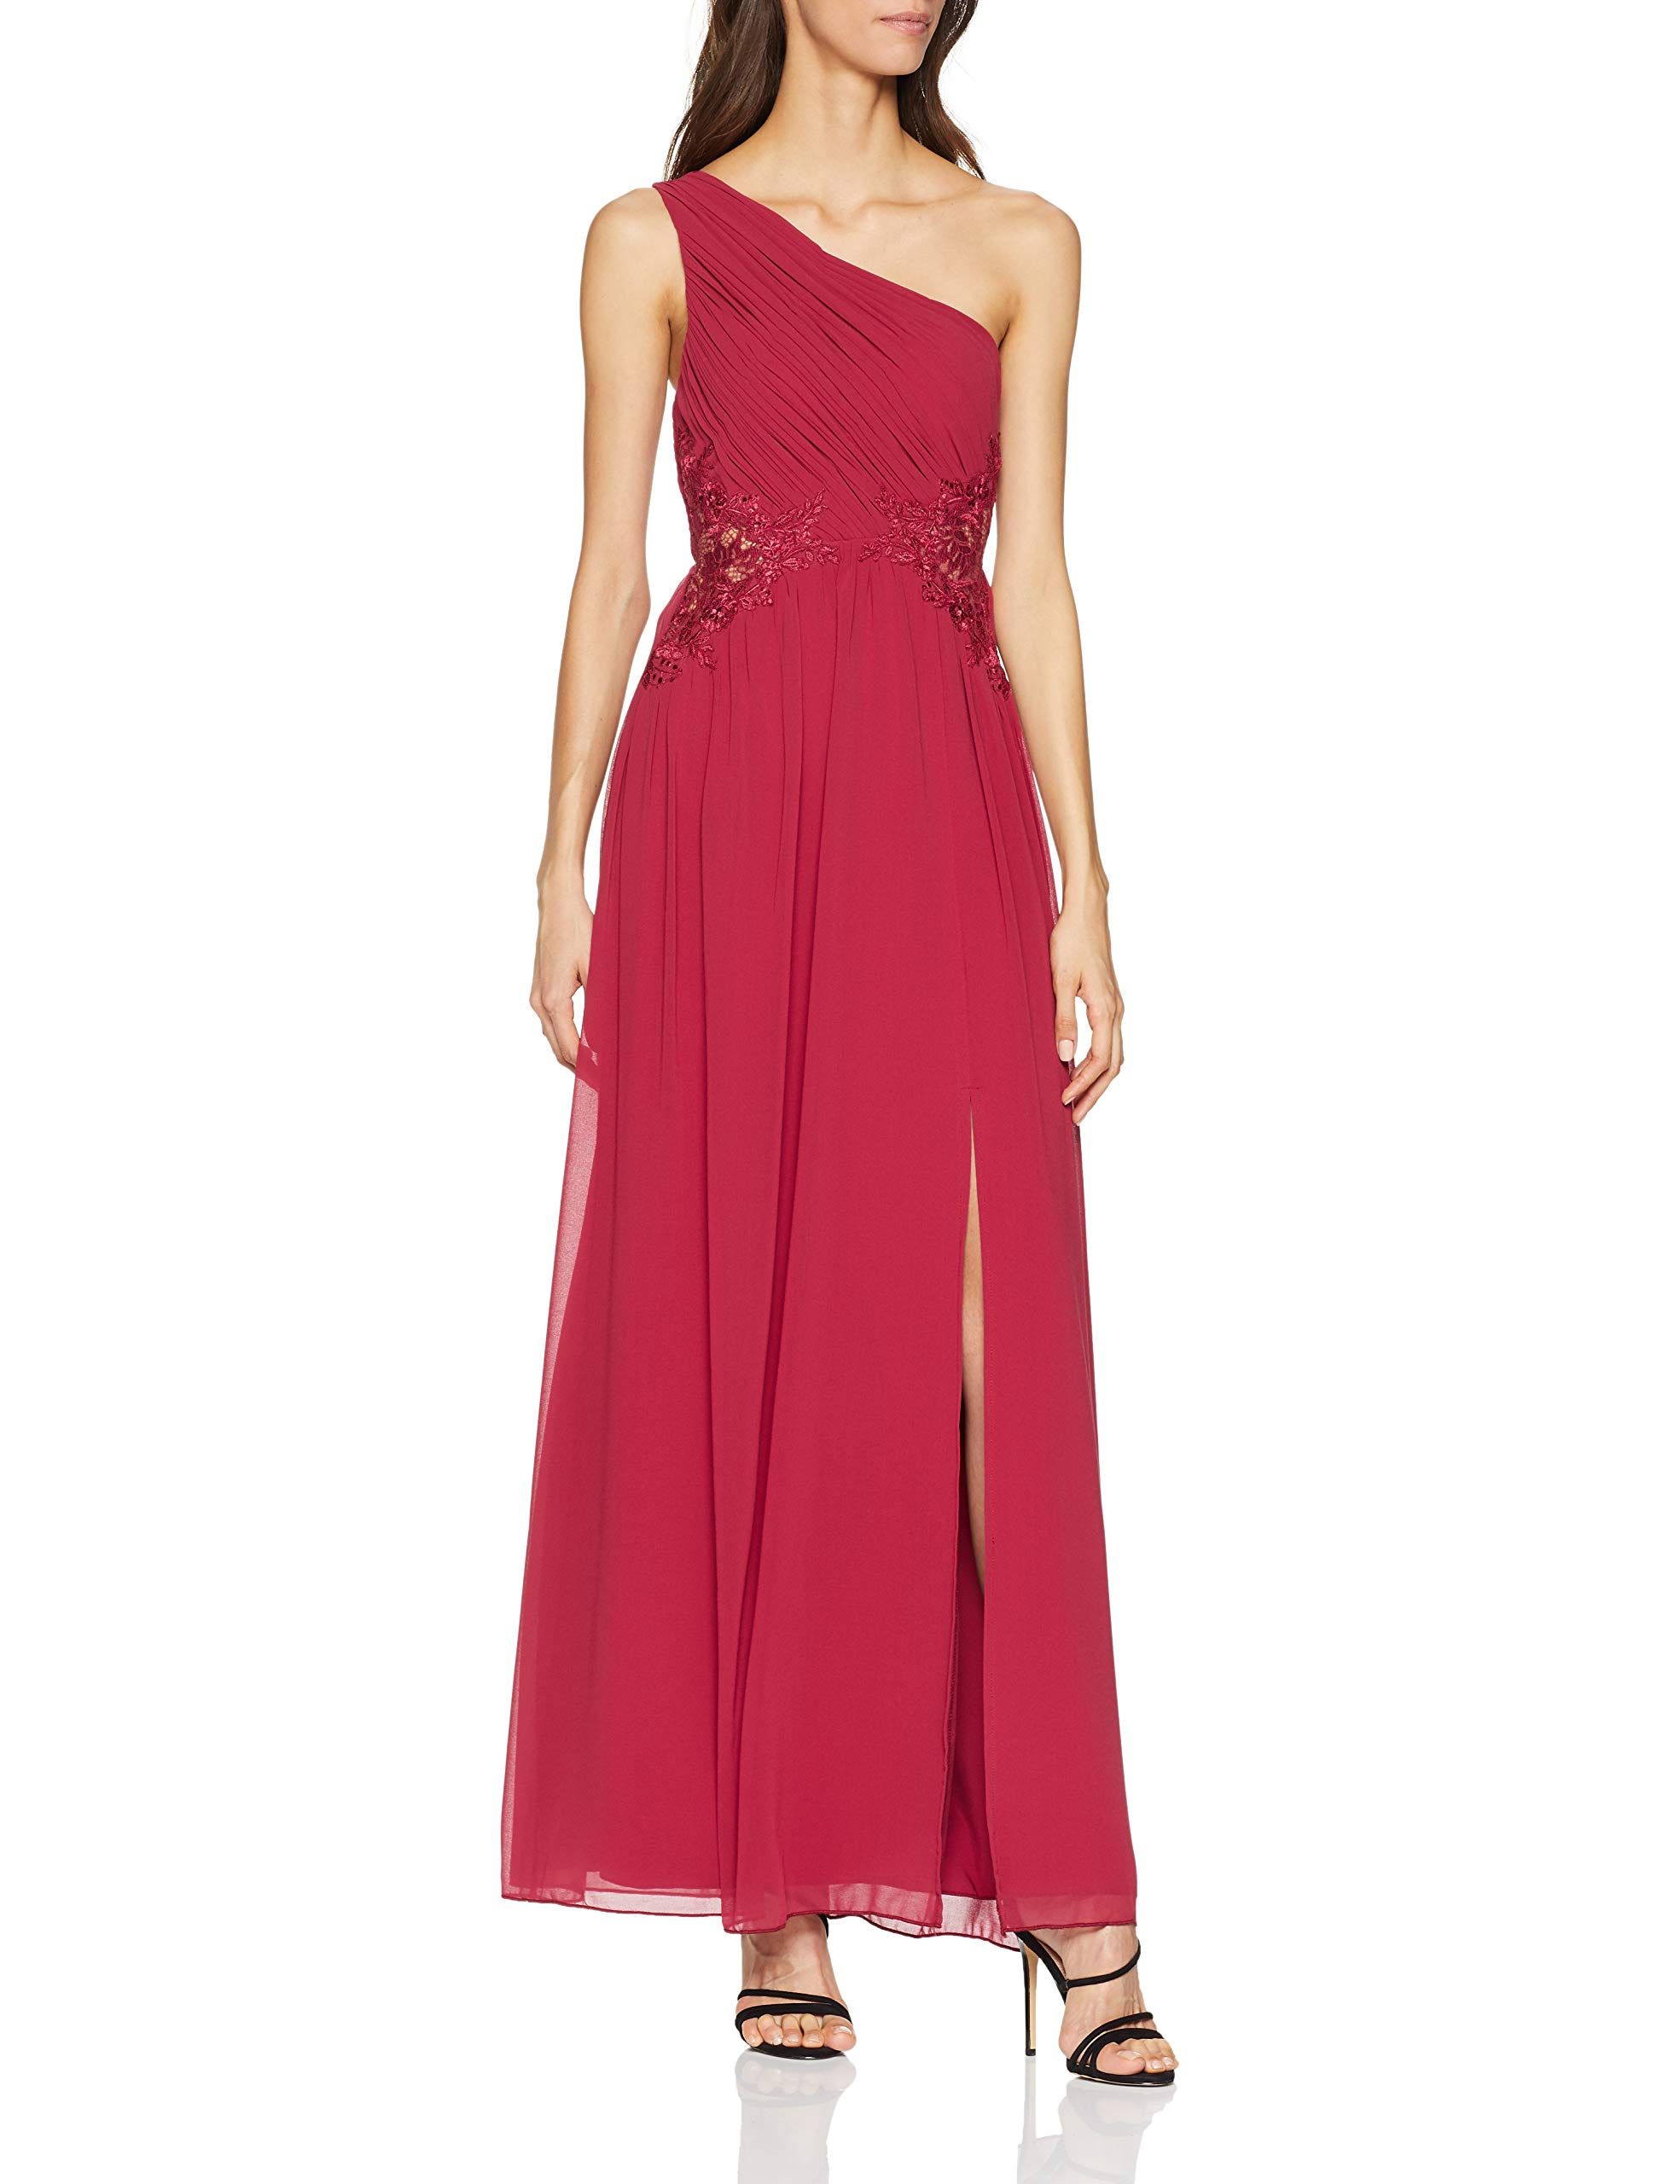 Fabricant10Femme Little Mistress Nadja Red Shoulder With Lace One RobeRougecranberry Maxi Dress 00138taille zMVpLqUGS